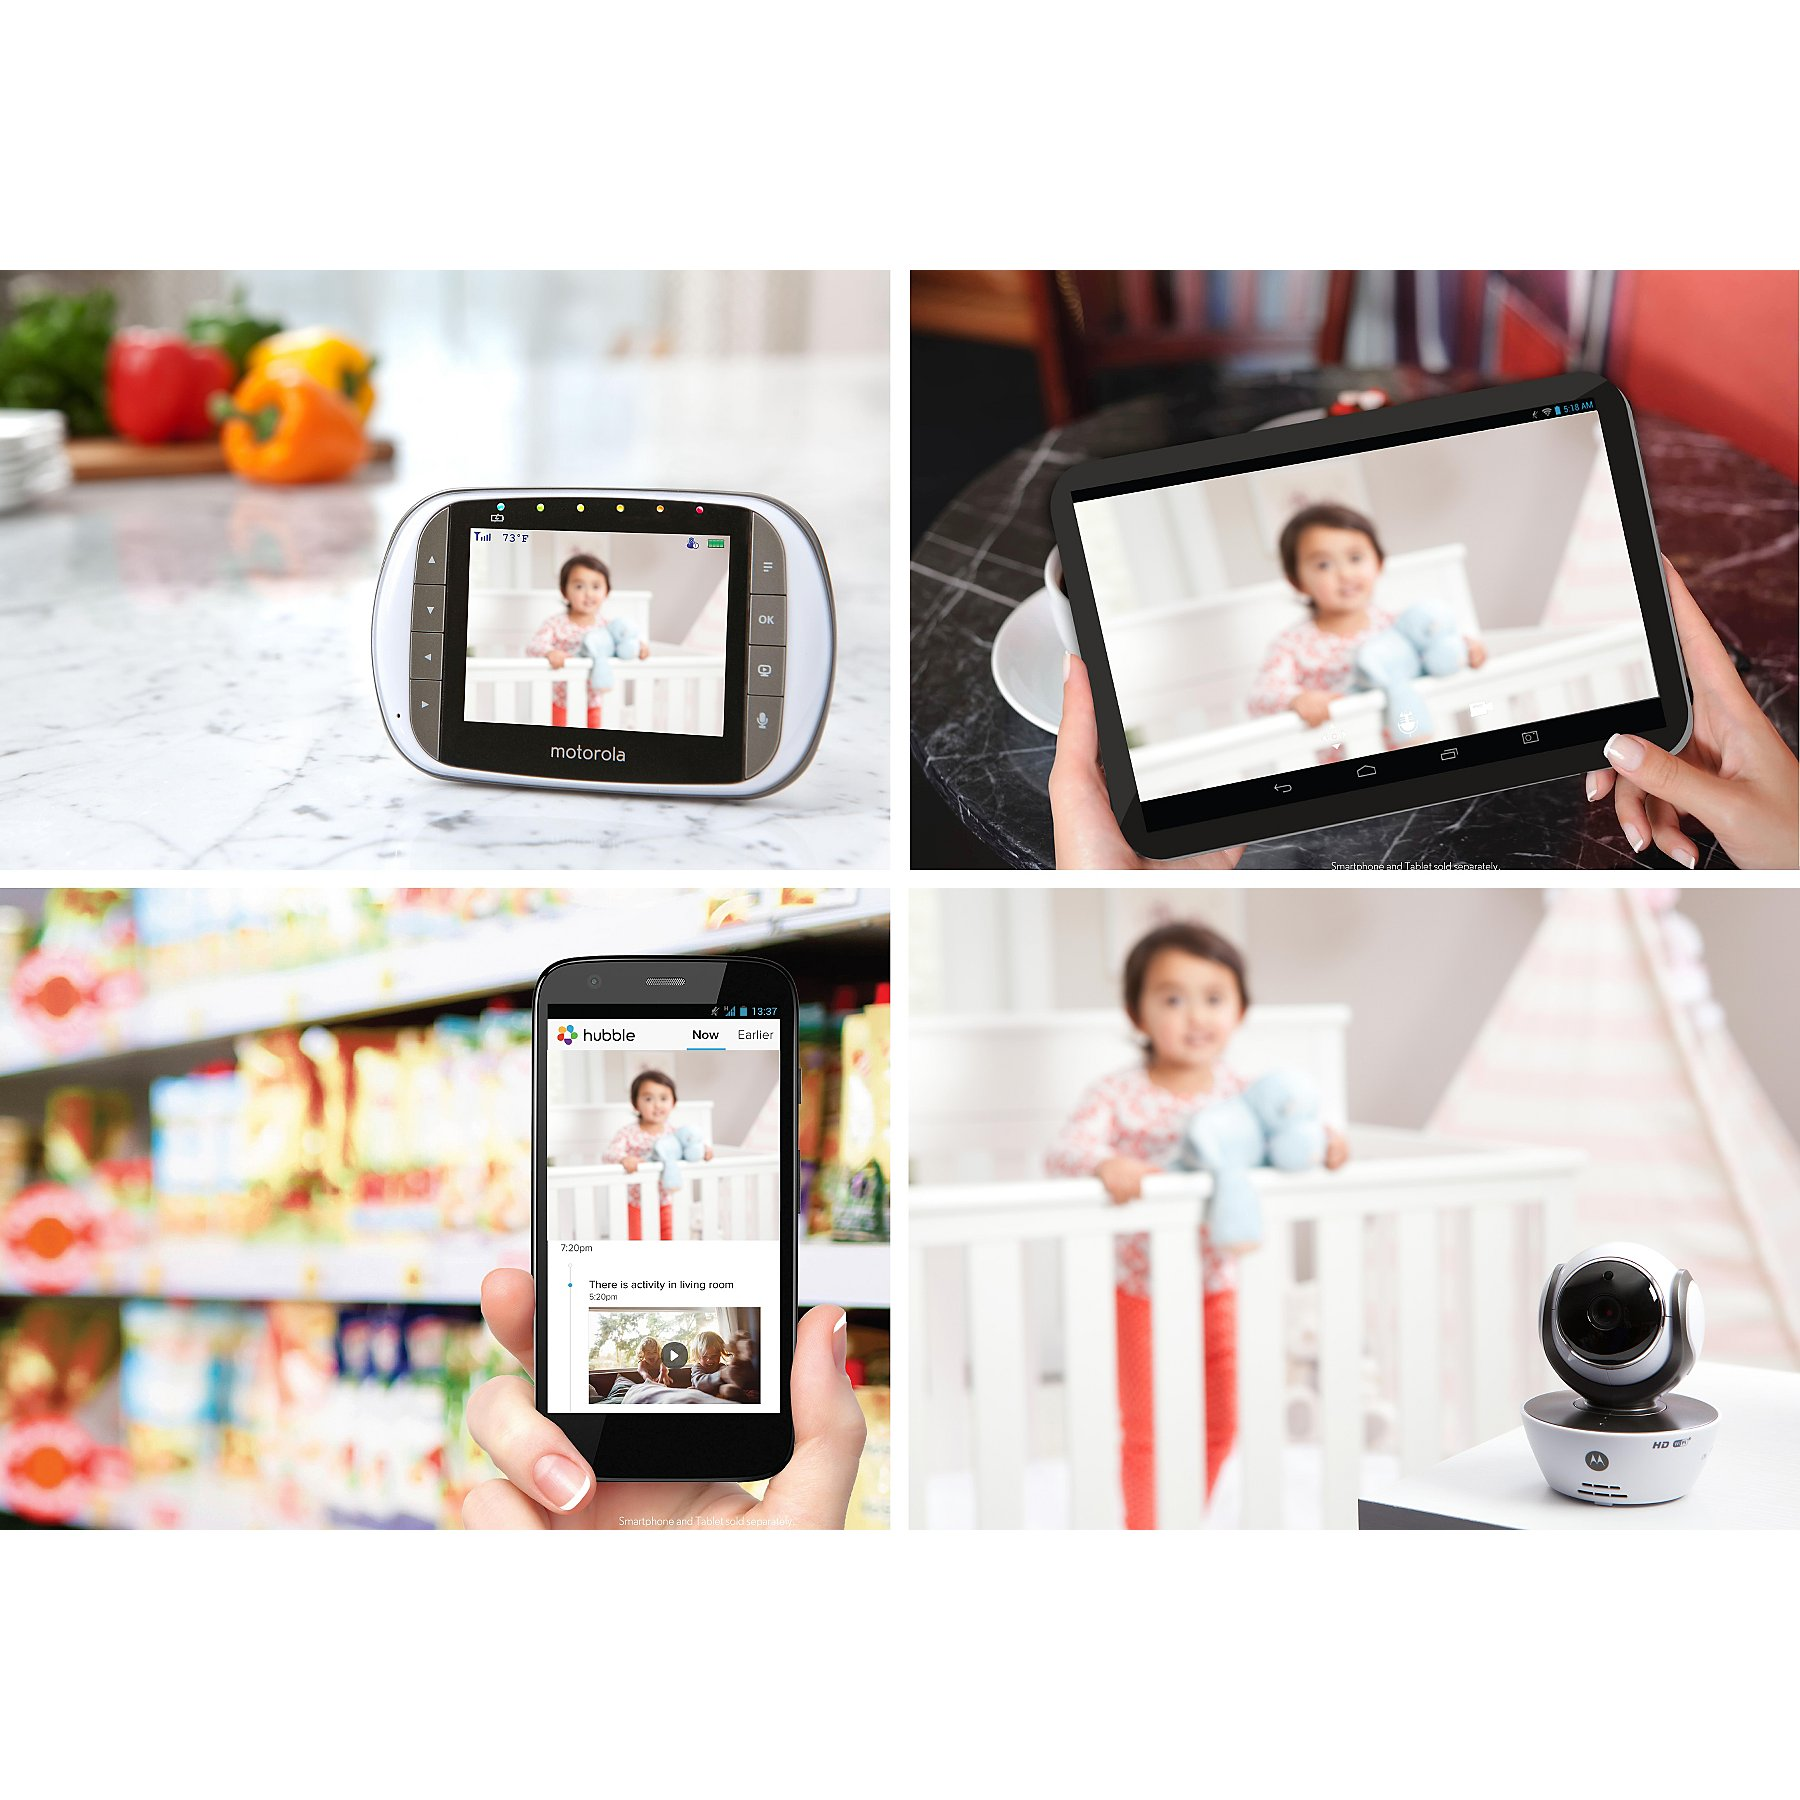 Motorola MBP853 Connect Digital Video Baby Monitor